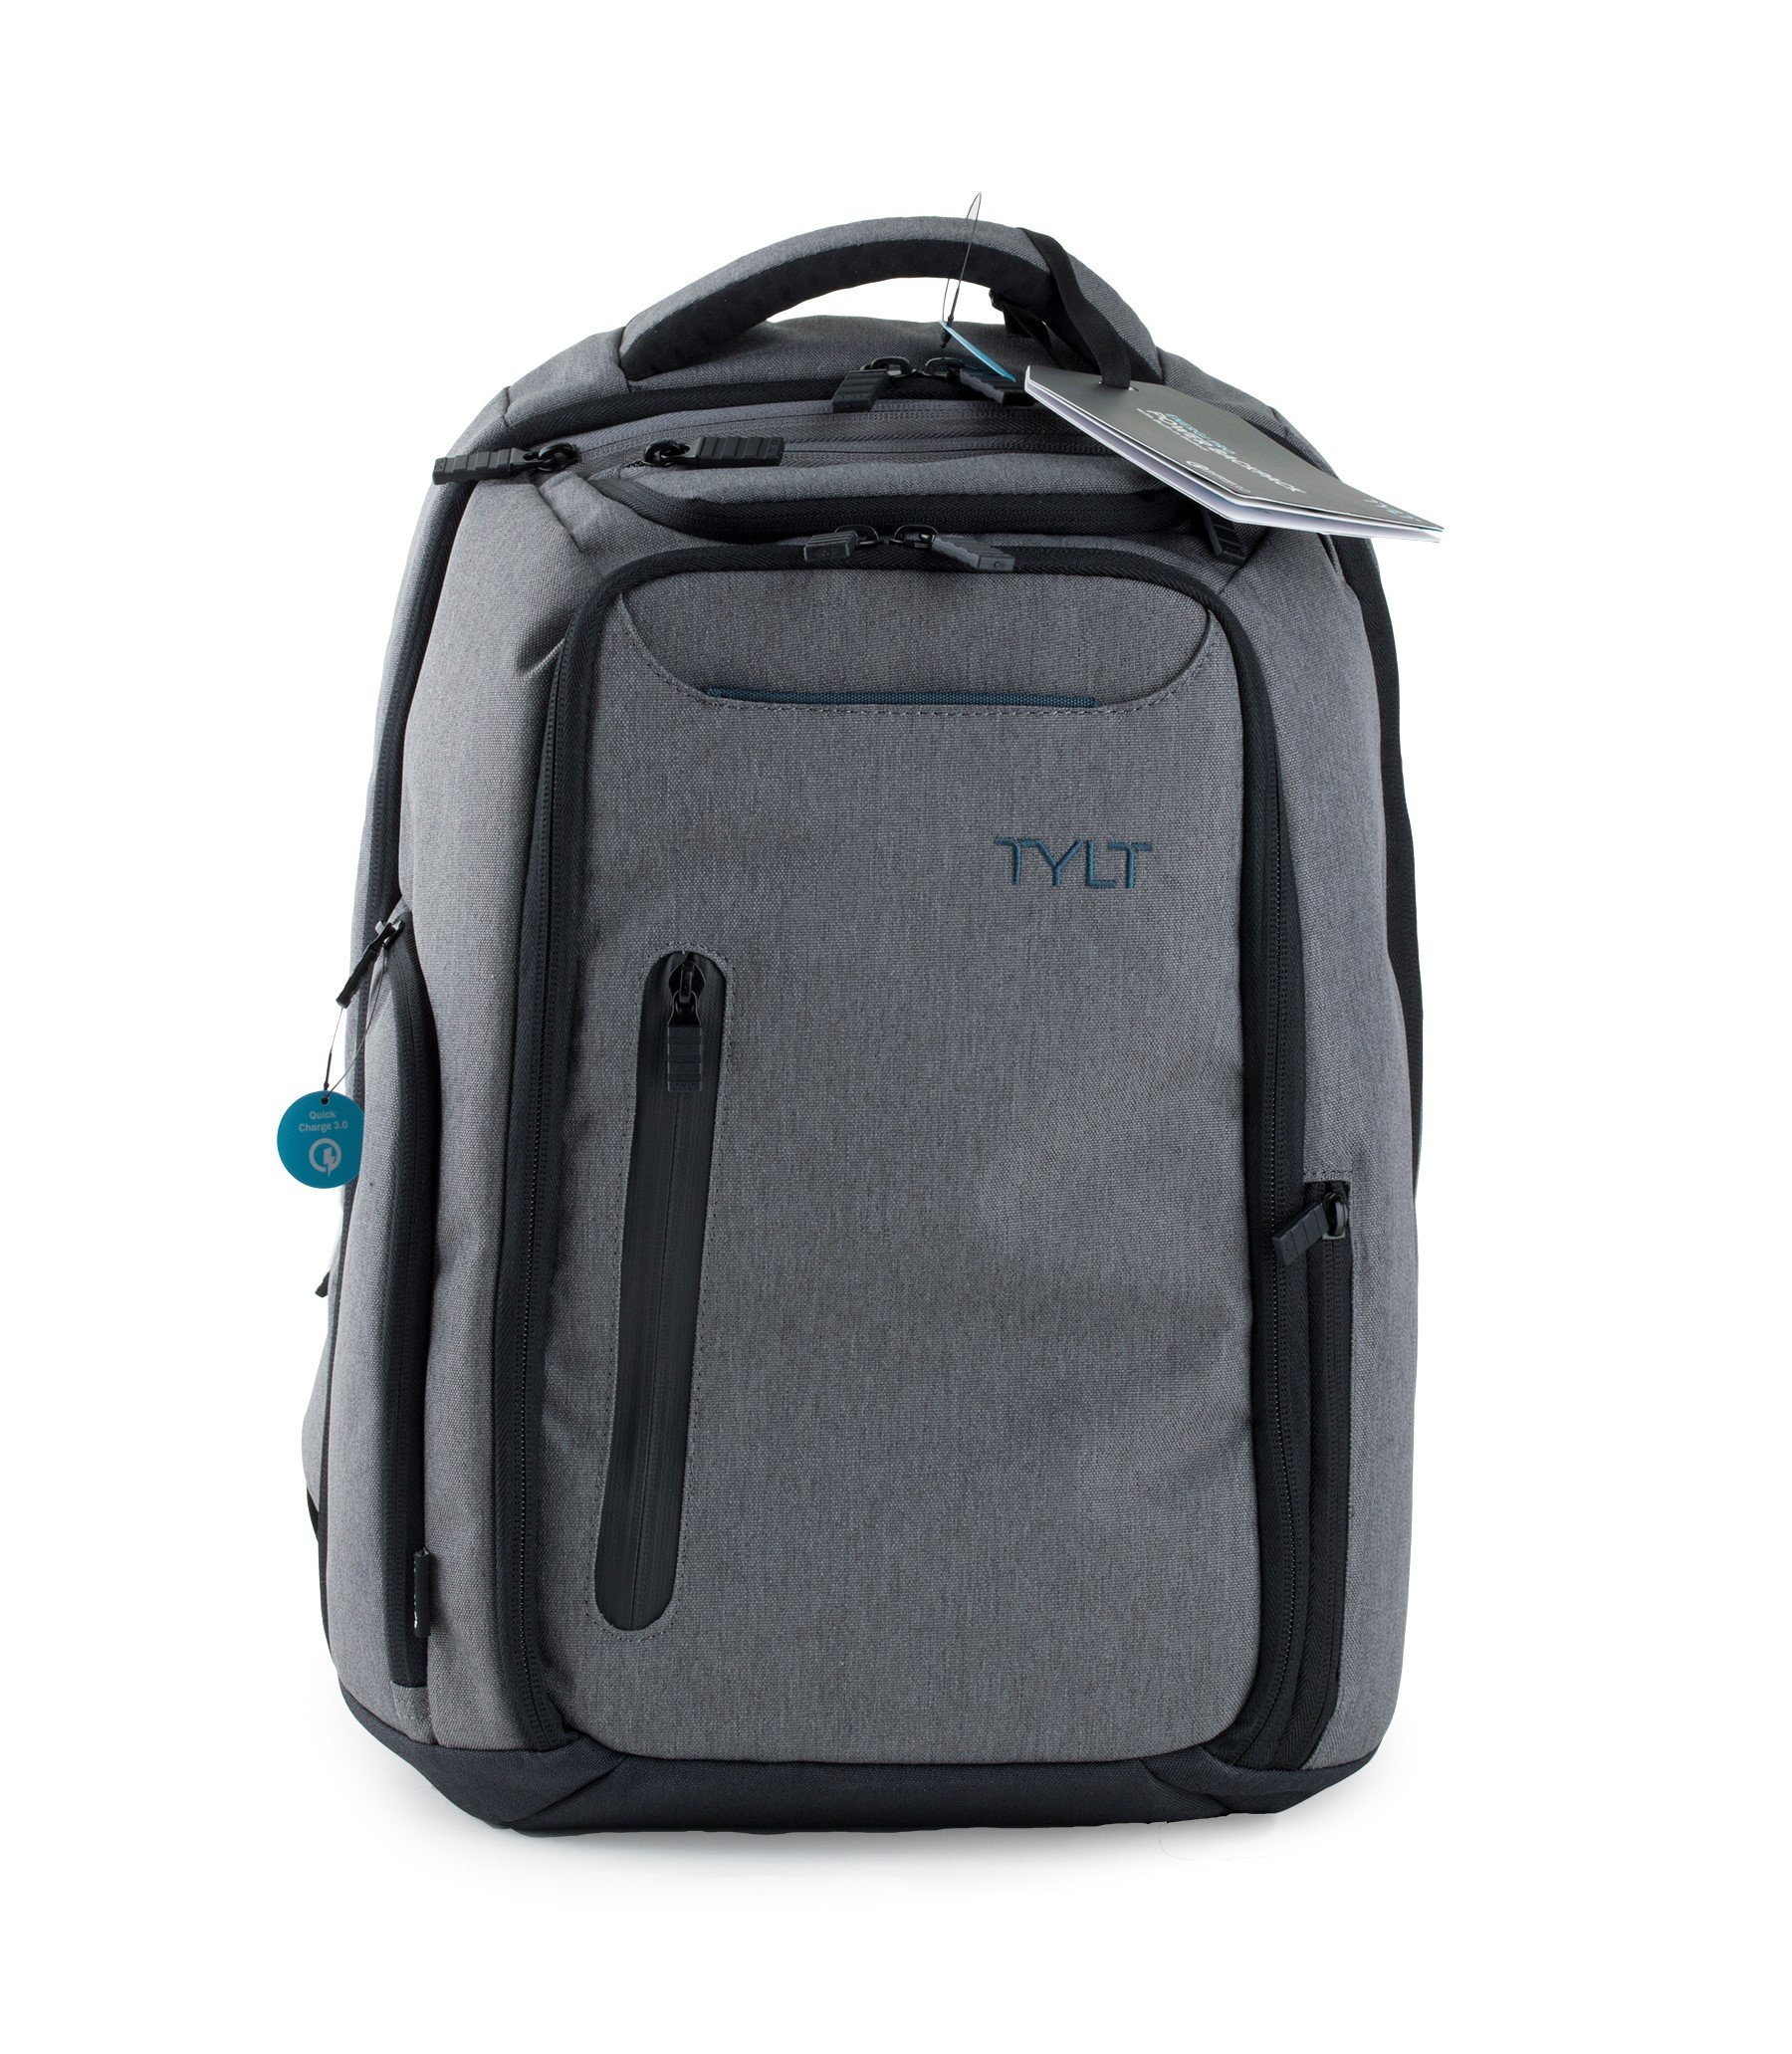 7526e8ac52a3 TYLT Energi Pro Power Backpack with Charging Station - Charge Up to 3  Devices at Once via USB or USB Type-C Ports